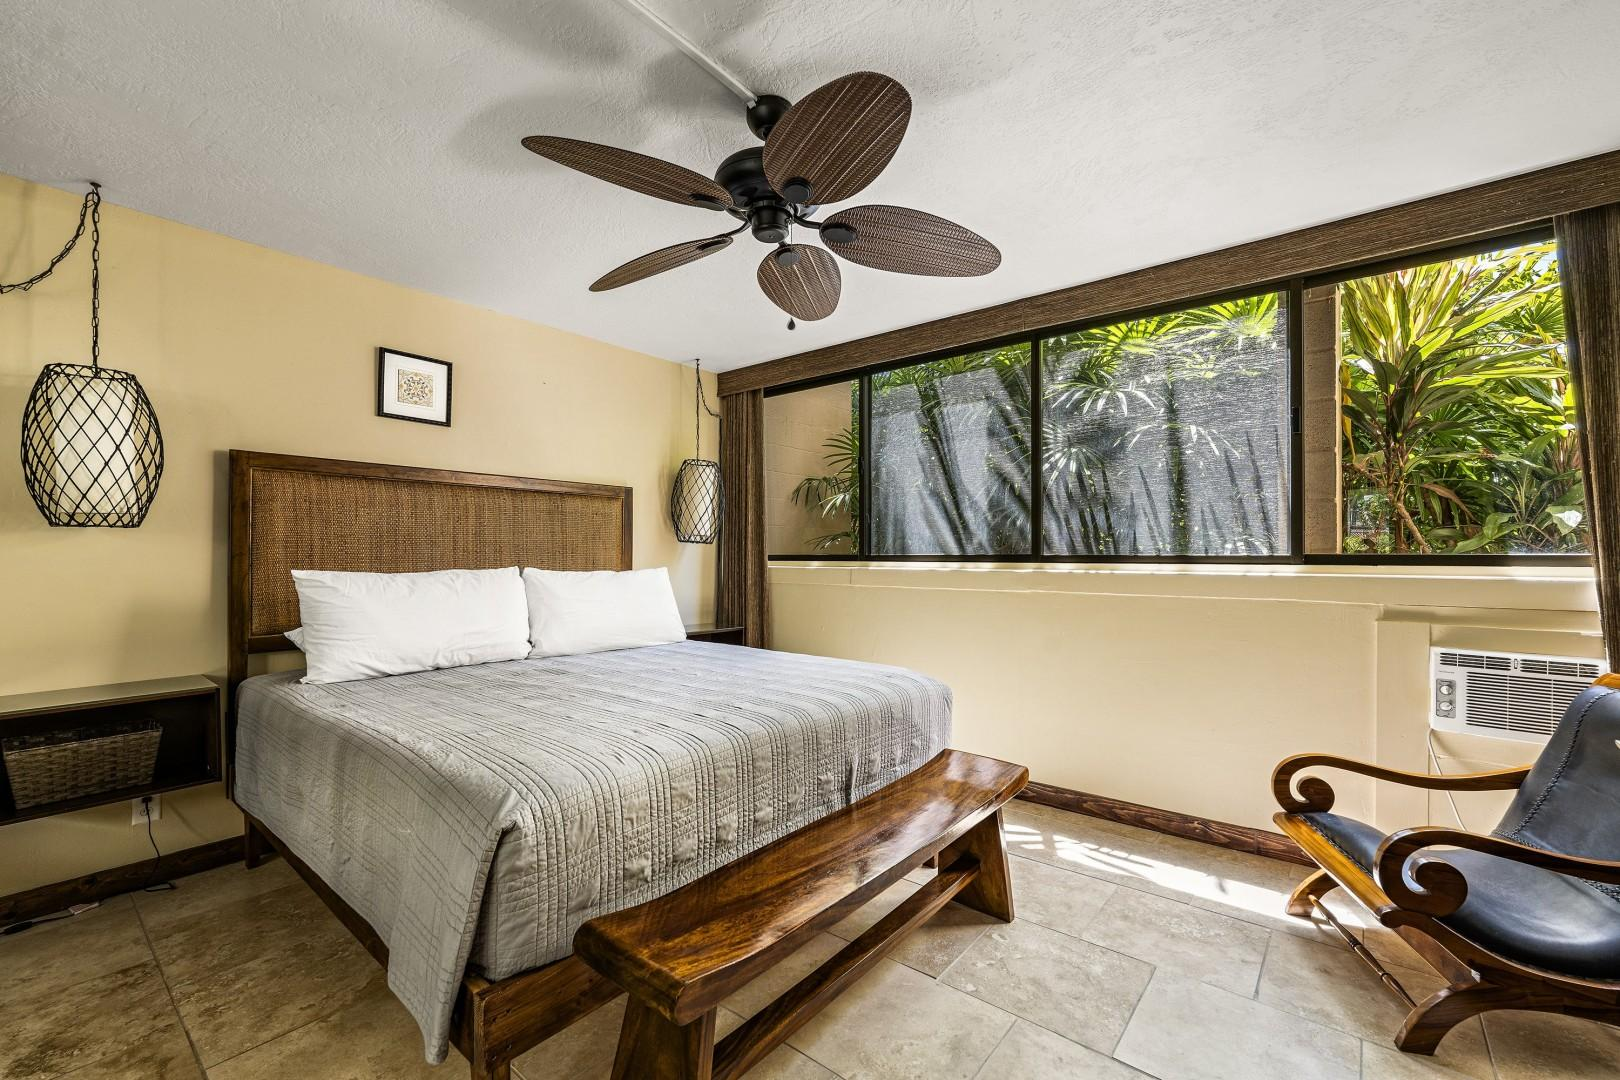 Luxurious King sized bed in the bedroom with green scape out the window